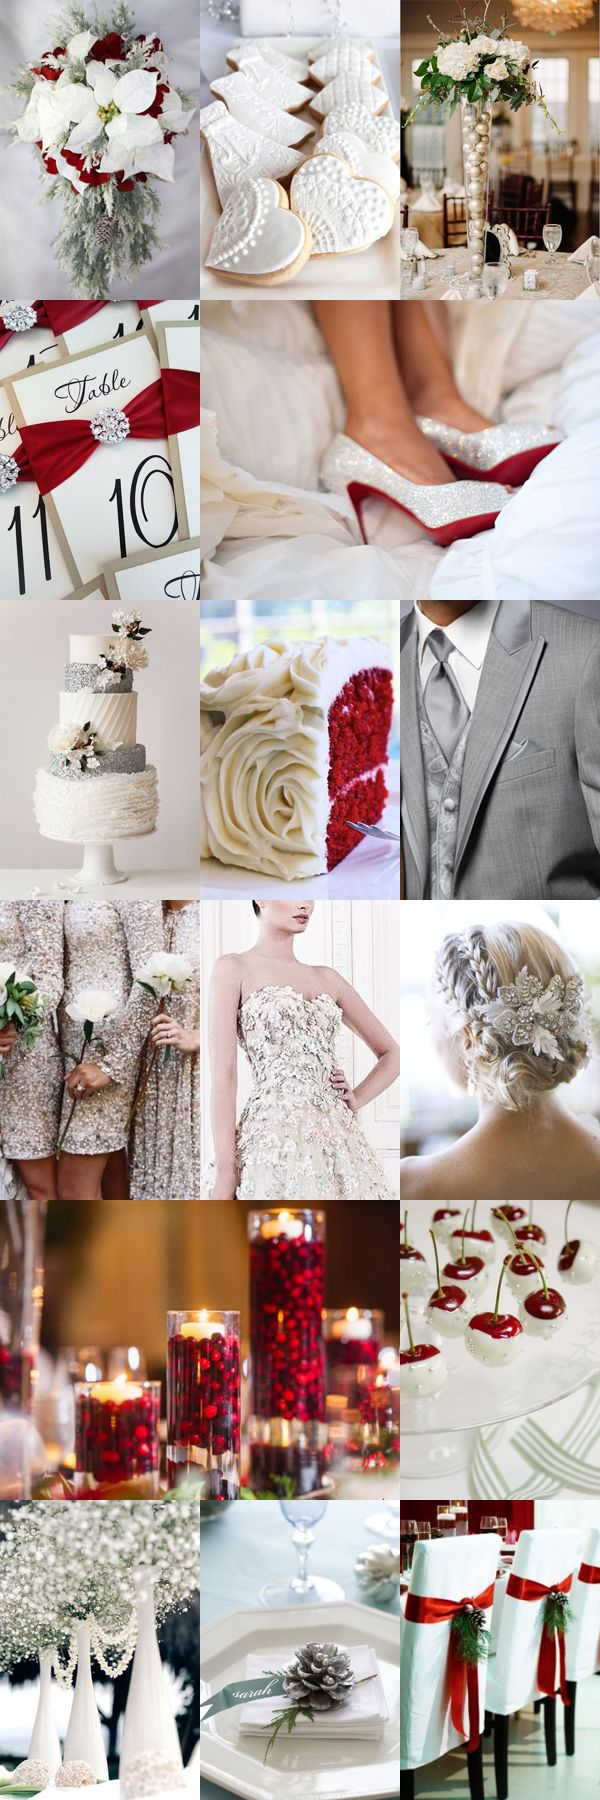 Festive Christmas Wedding Inspiration Board 1366 best